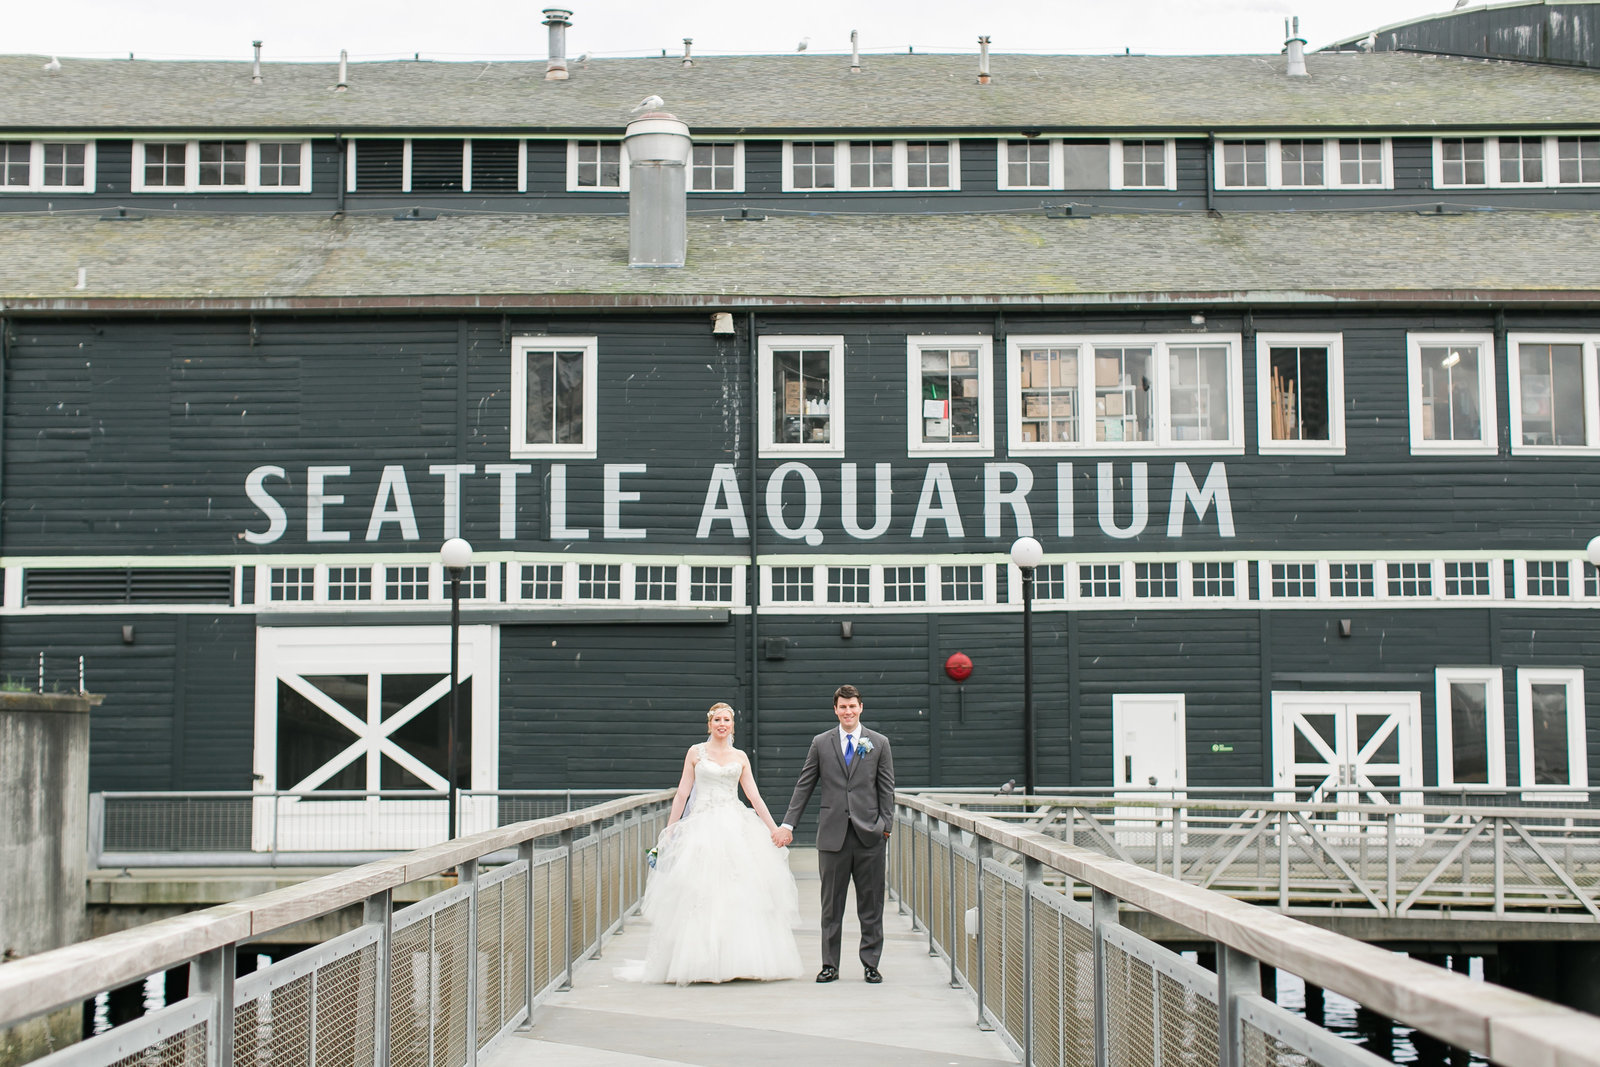 michael-jody-seattle-aquarium-wedding451458